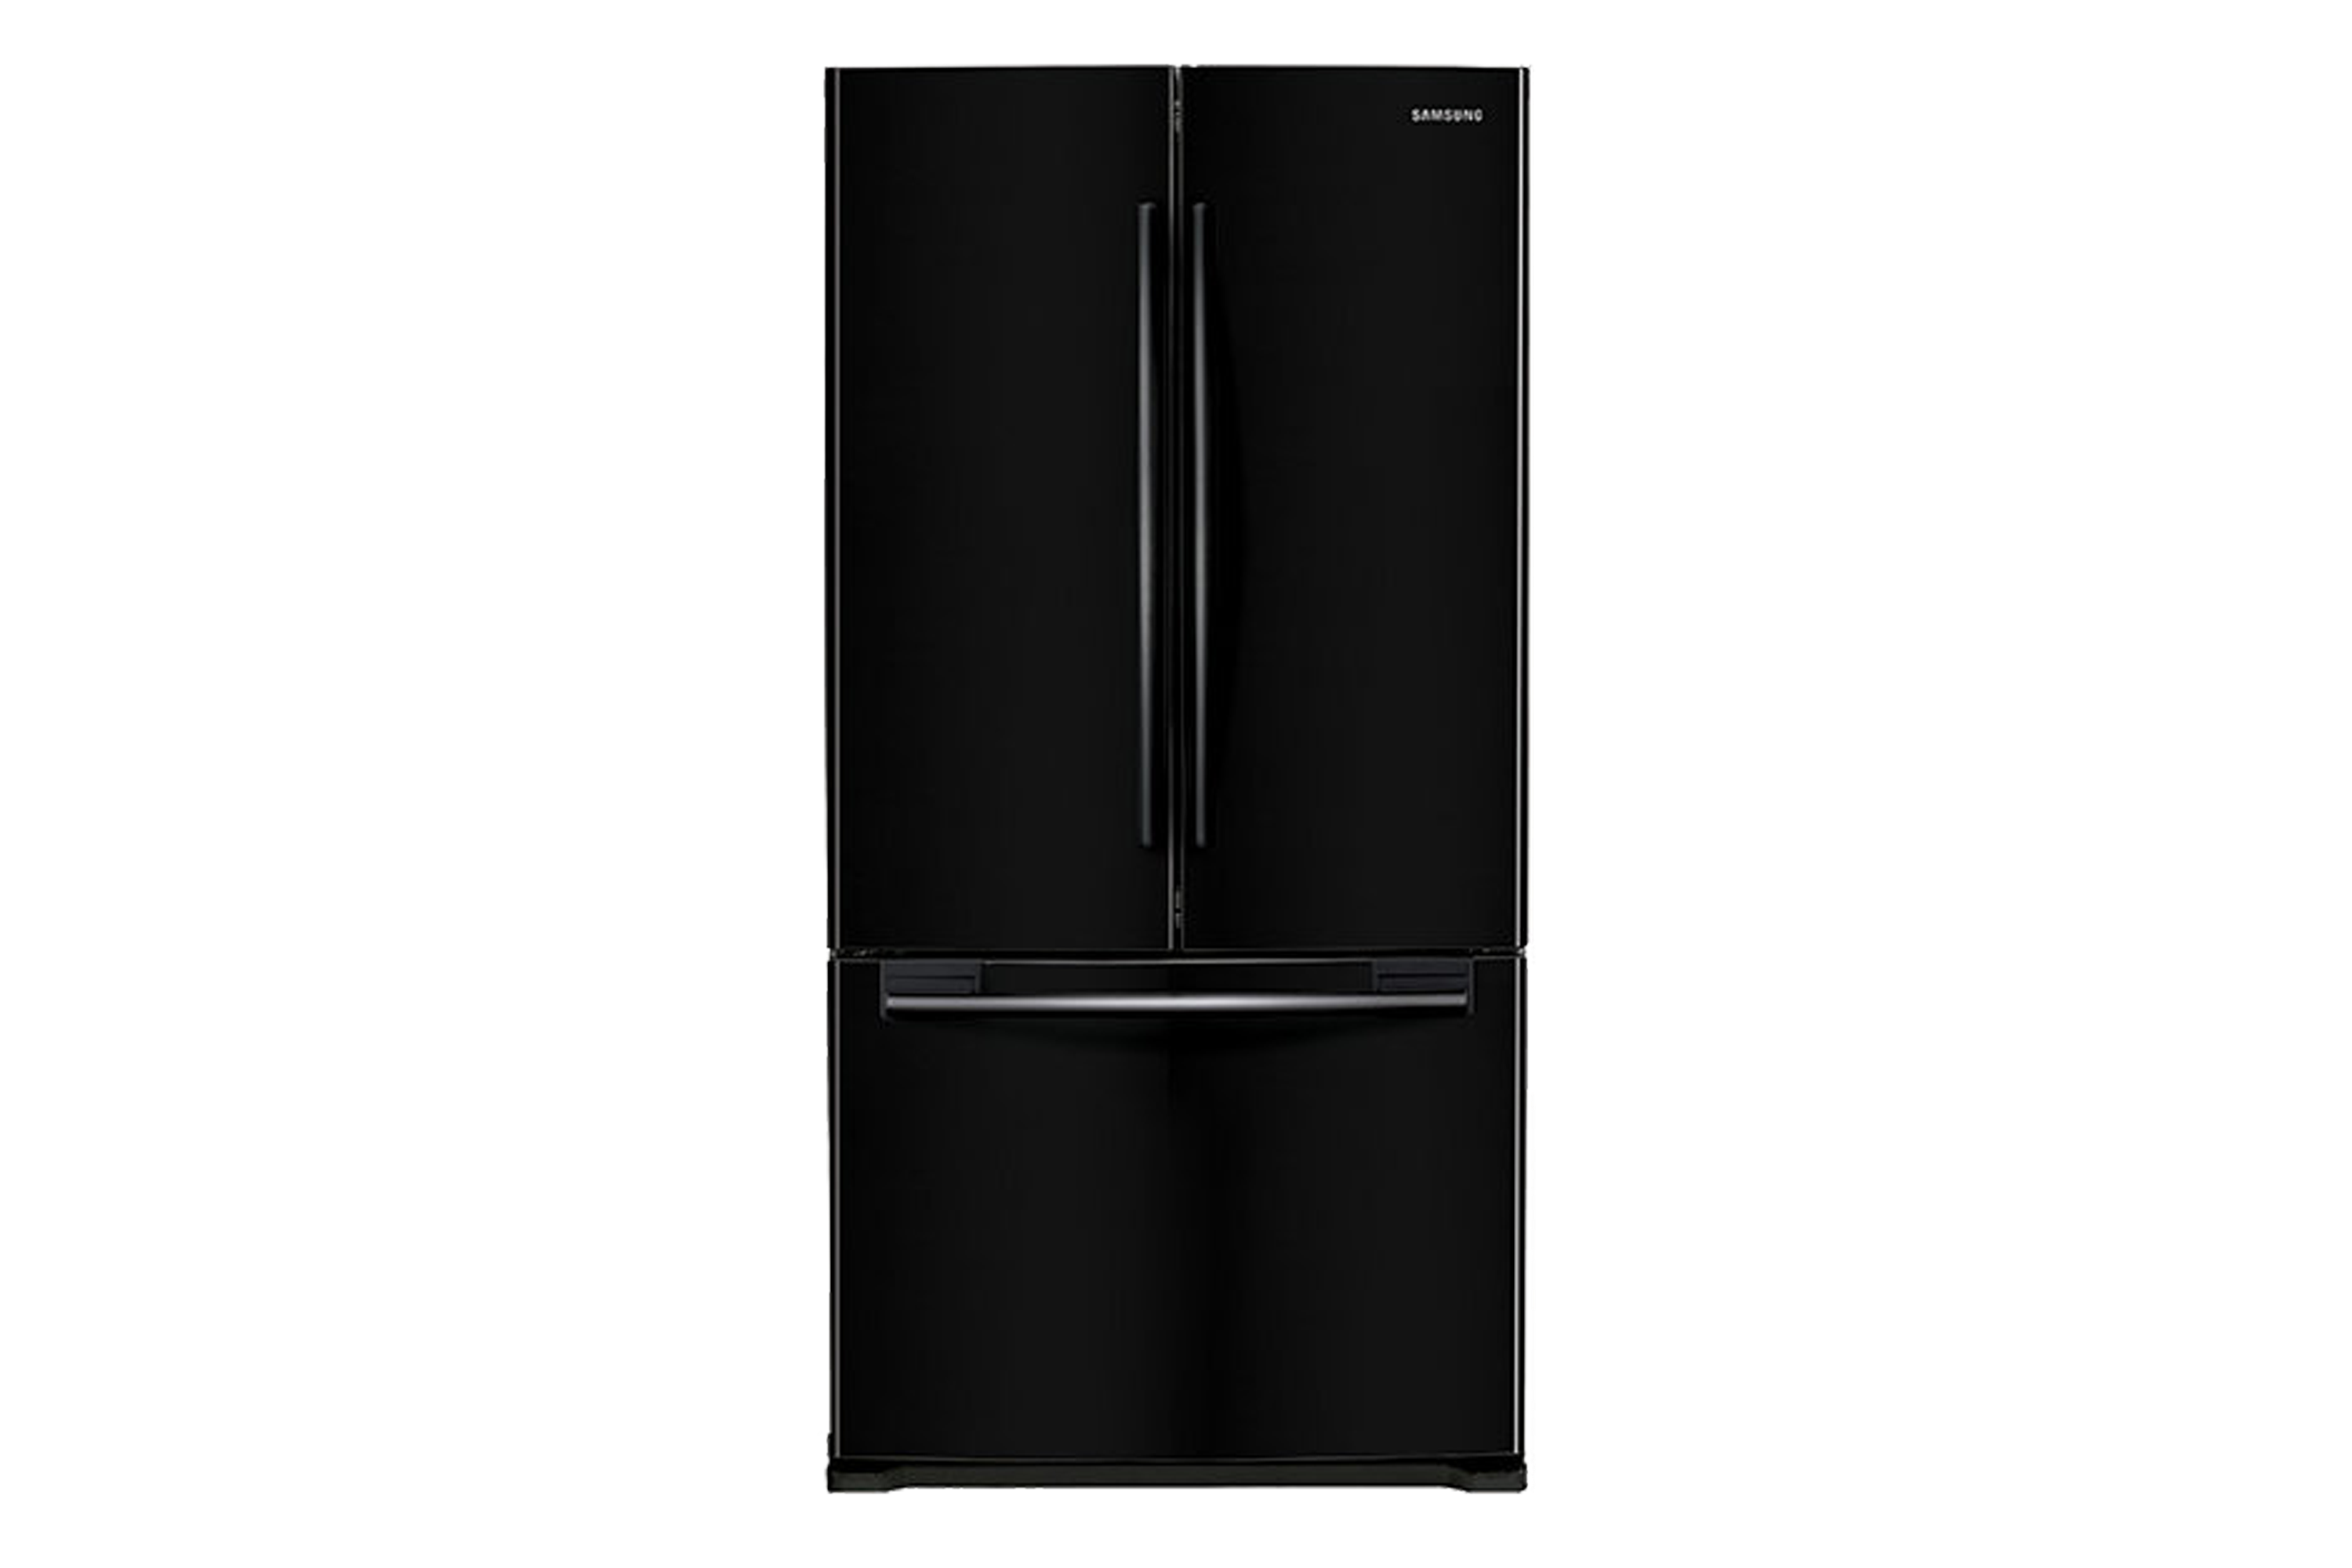 Rf hfenbsg french ac. Refrigerator clipart double door